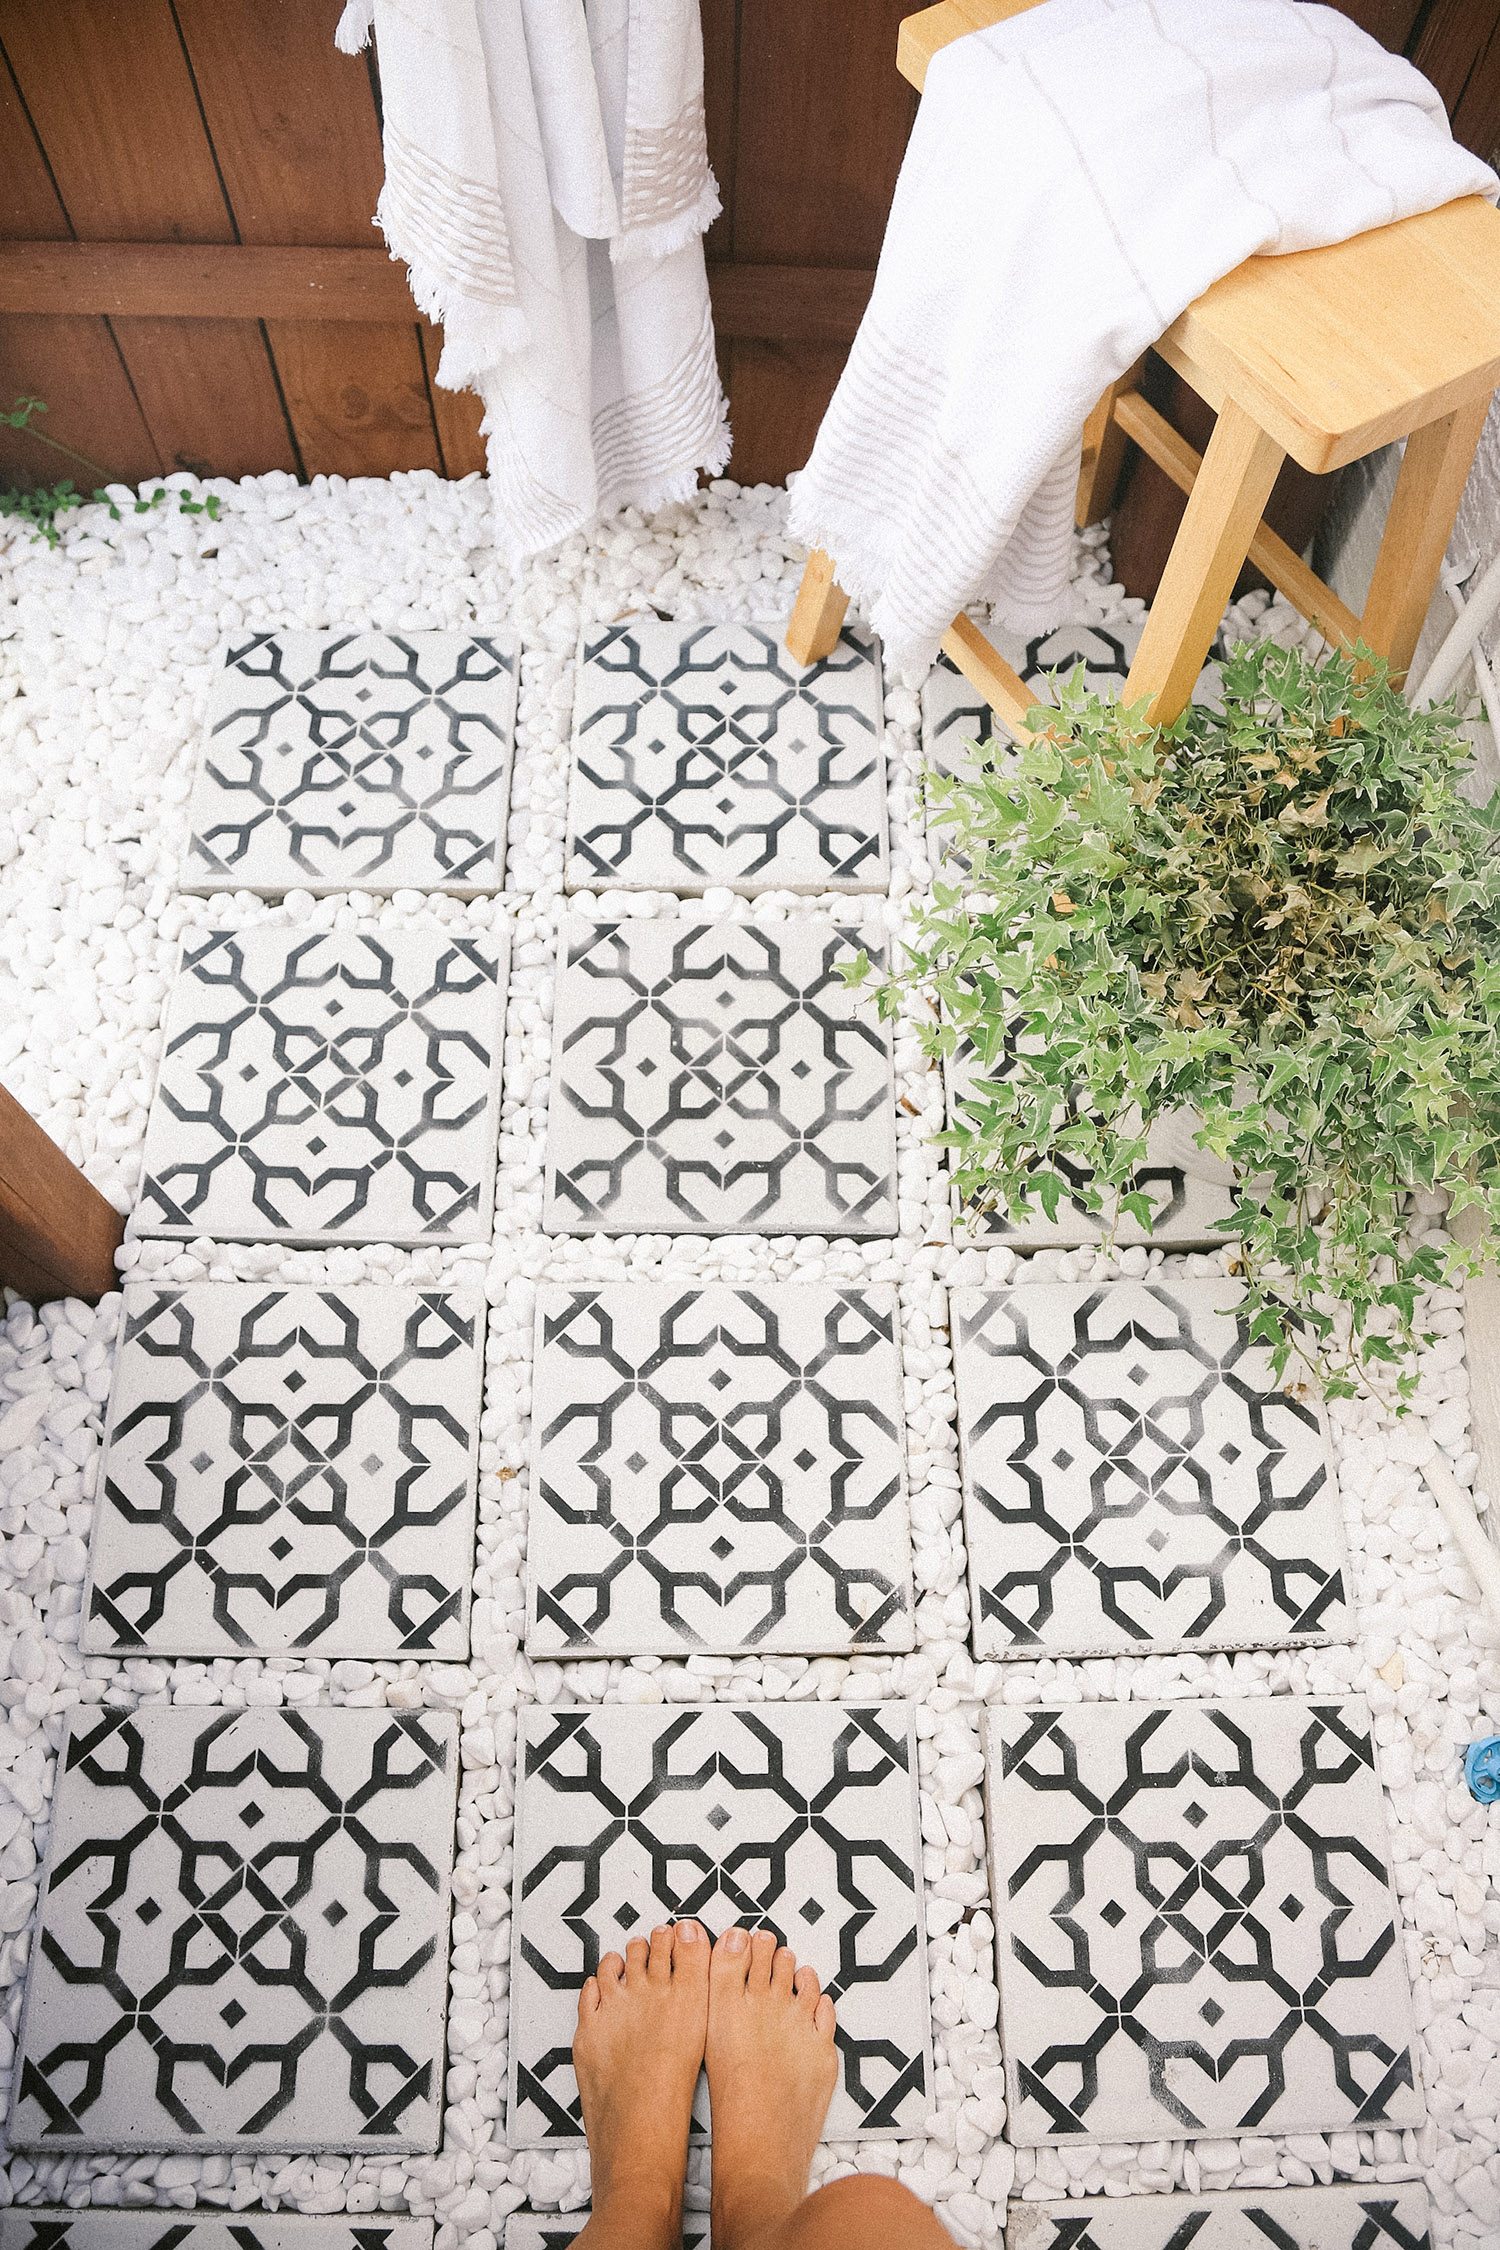 DIY Outdoor Shower Ideas on a Budget for the Ultimate Backyard Oasis   DIY Outdoor Shower by popular Florida DIY blog, Fresh Mommy Blog: image of a DIY outdoor shower with black and white mosaic tile and white rocks.